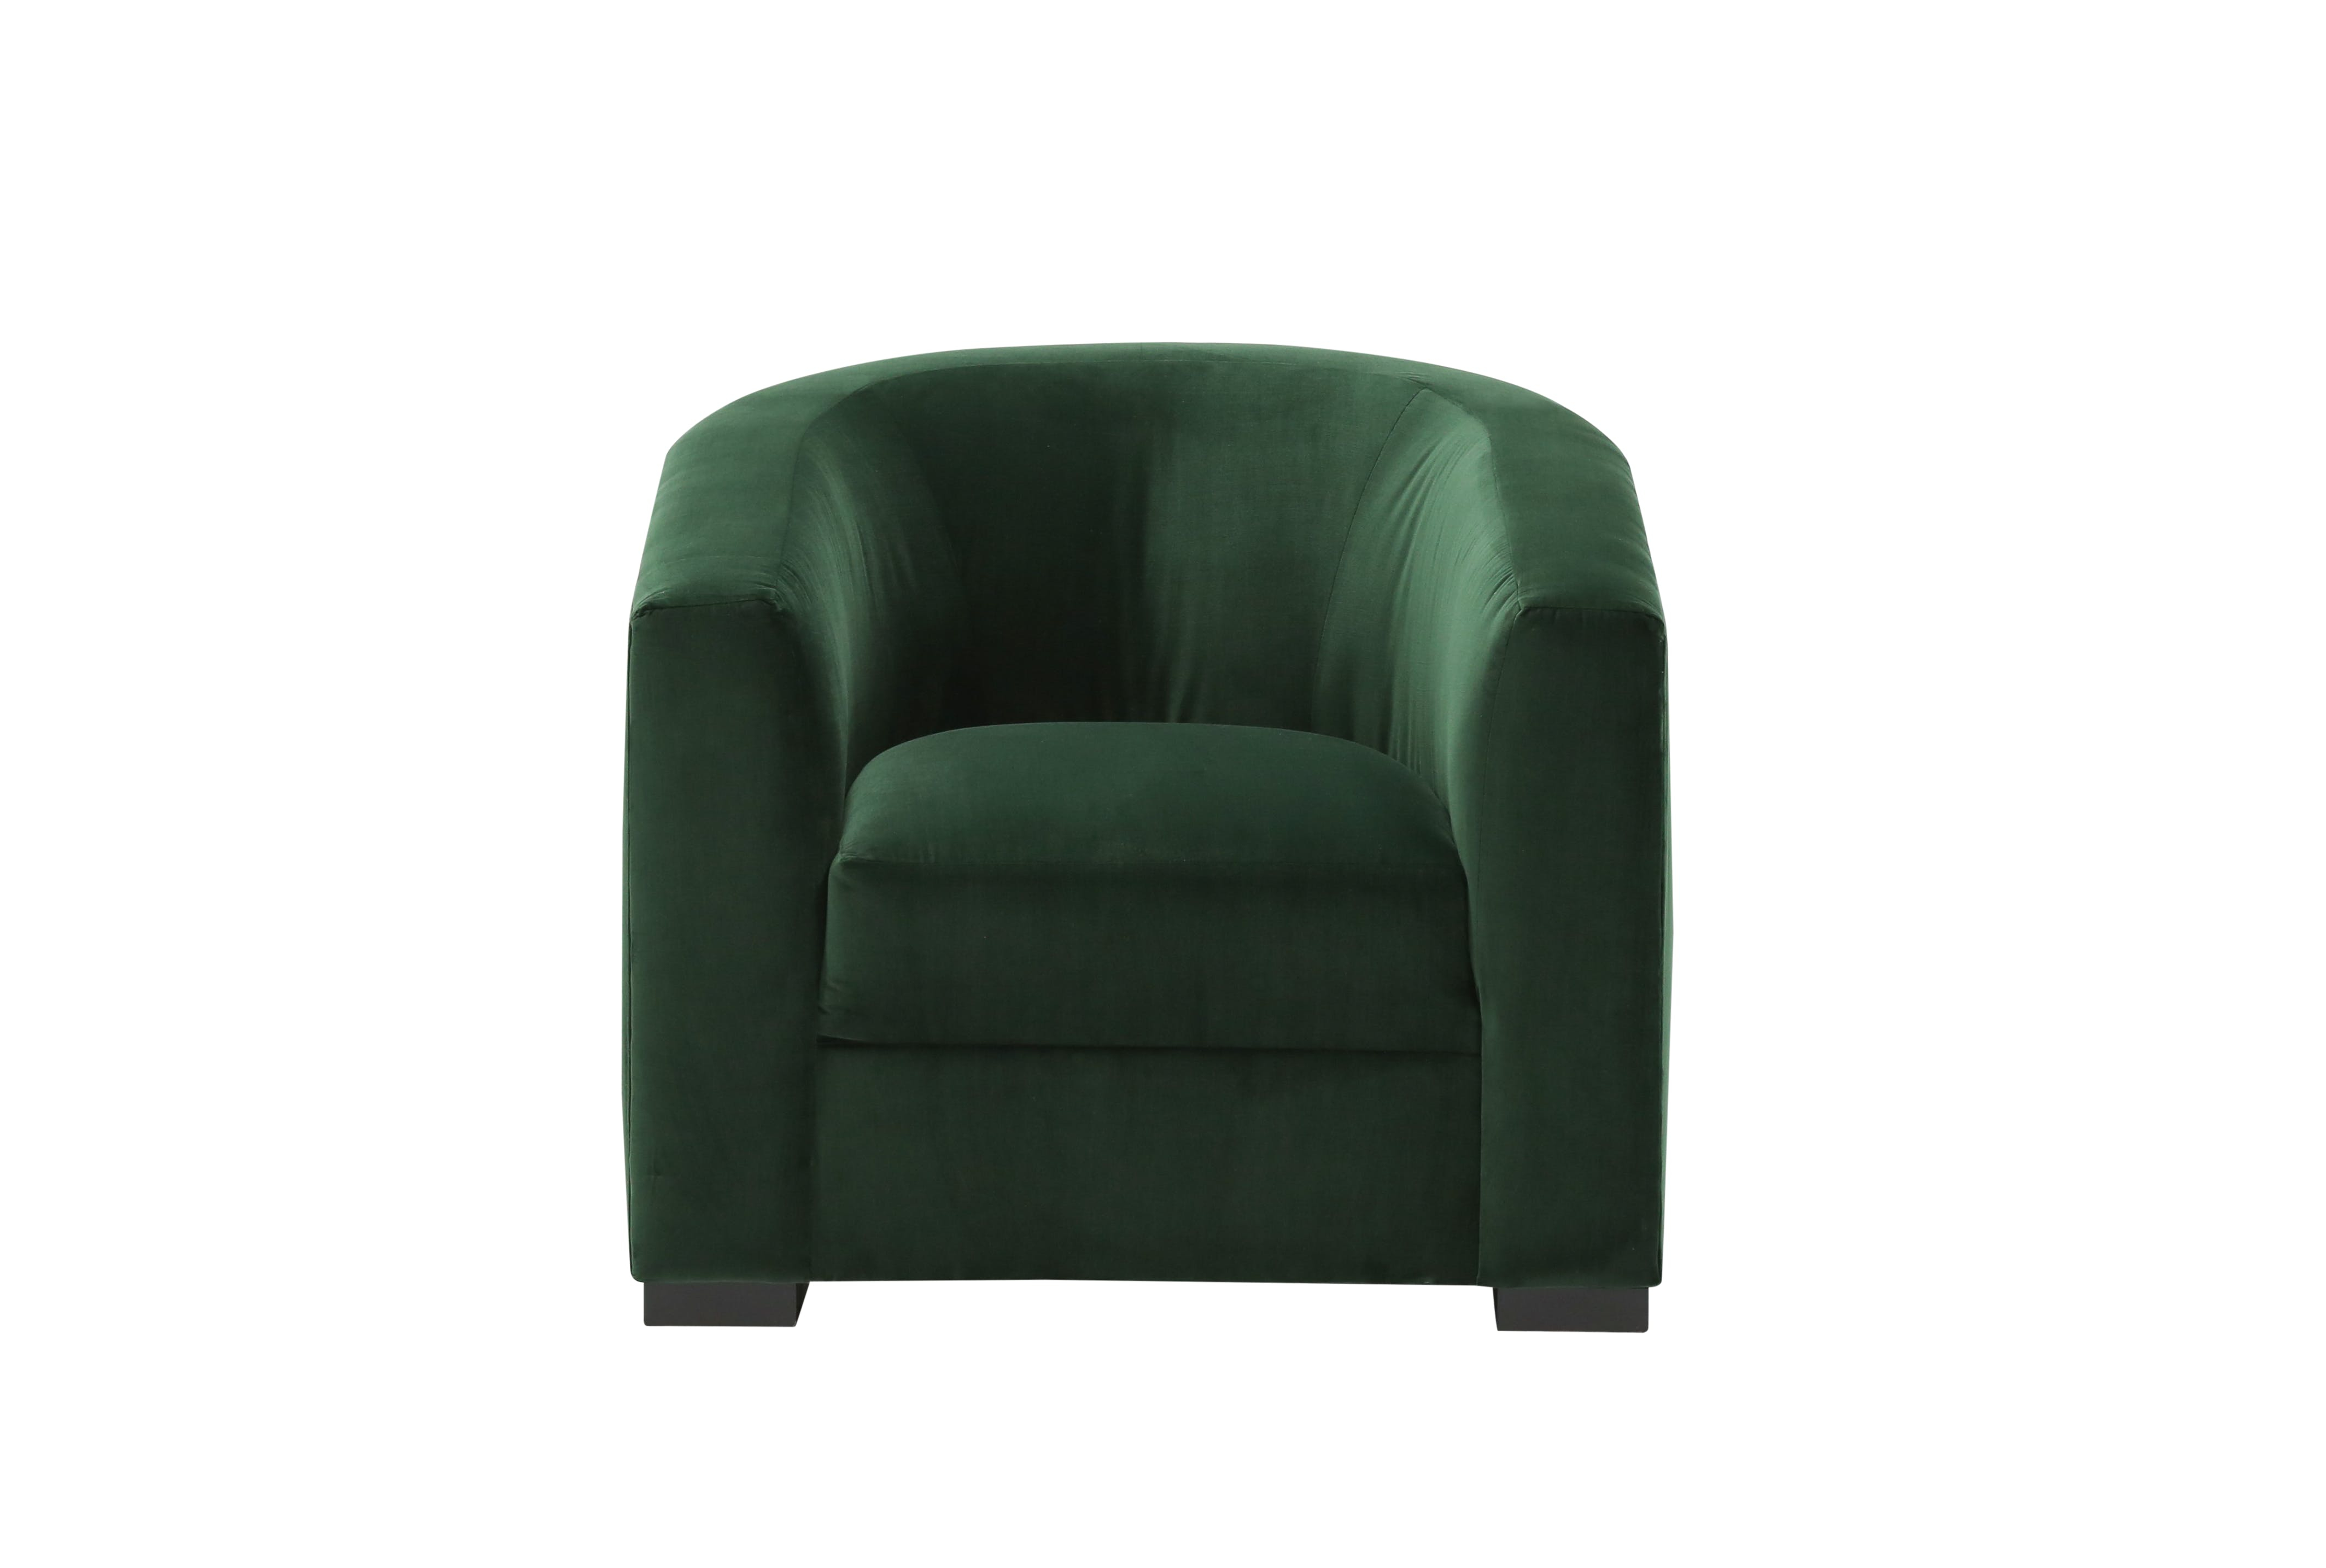 Nate Berkus Just Launched A Home Collection With Hubby Jeremiah For Matteo Arm Sofa Chairs By Nate Berkus And Jeremiah Brent (Image 13 of 25)